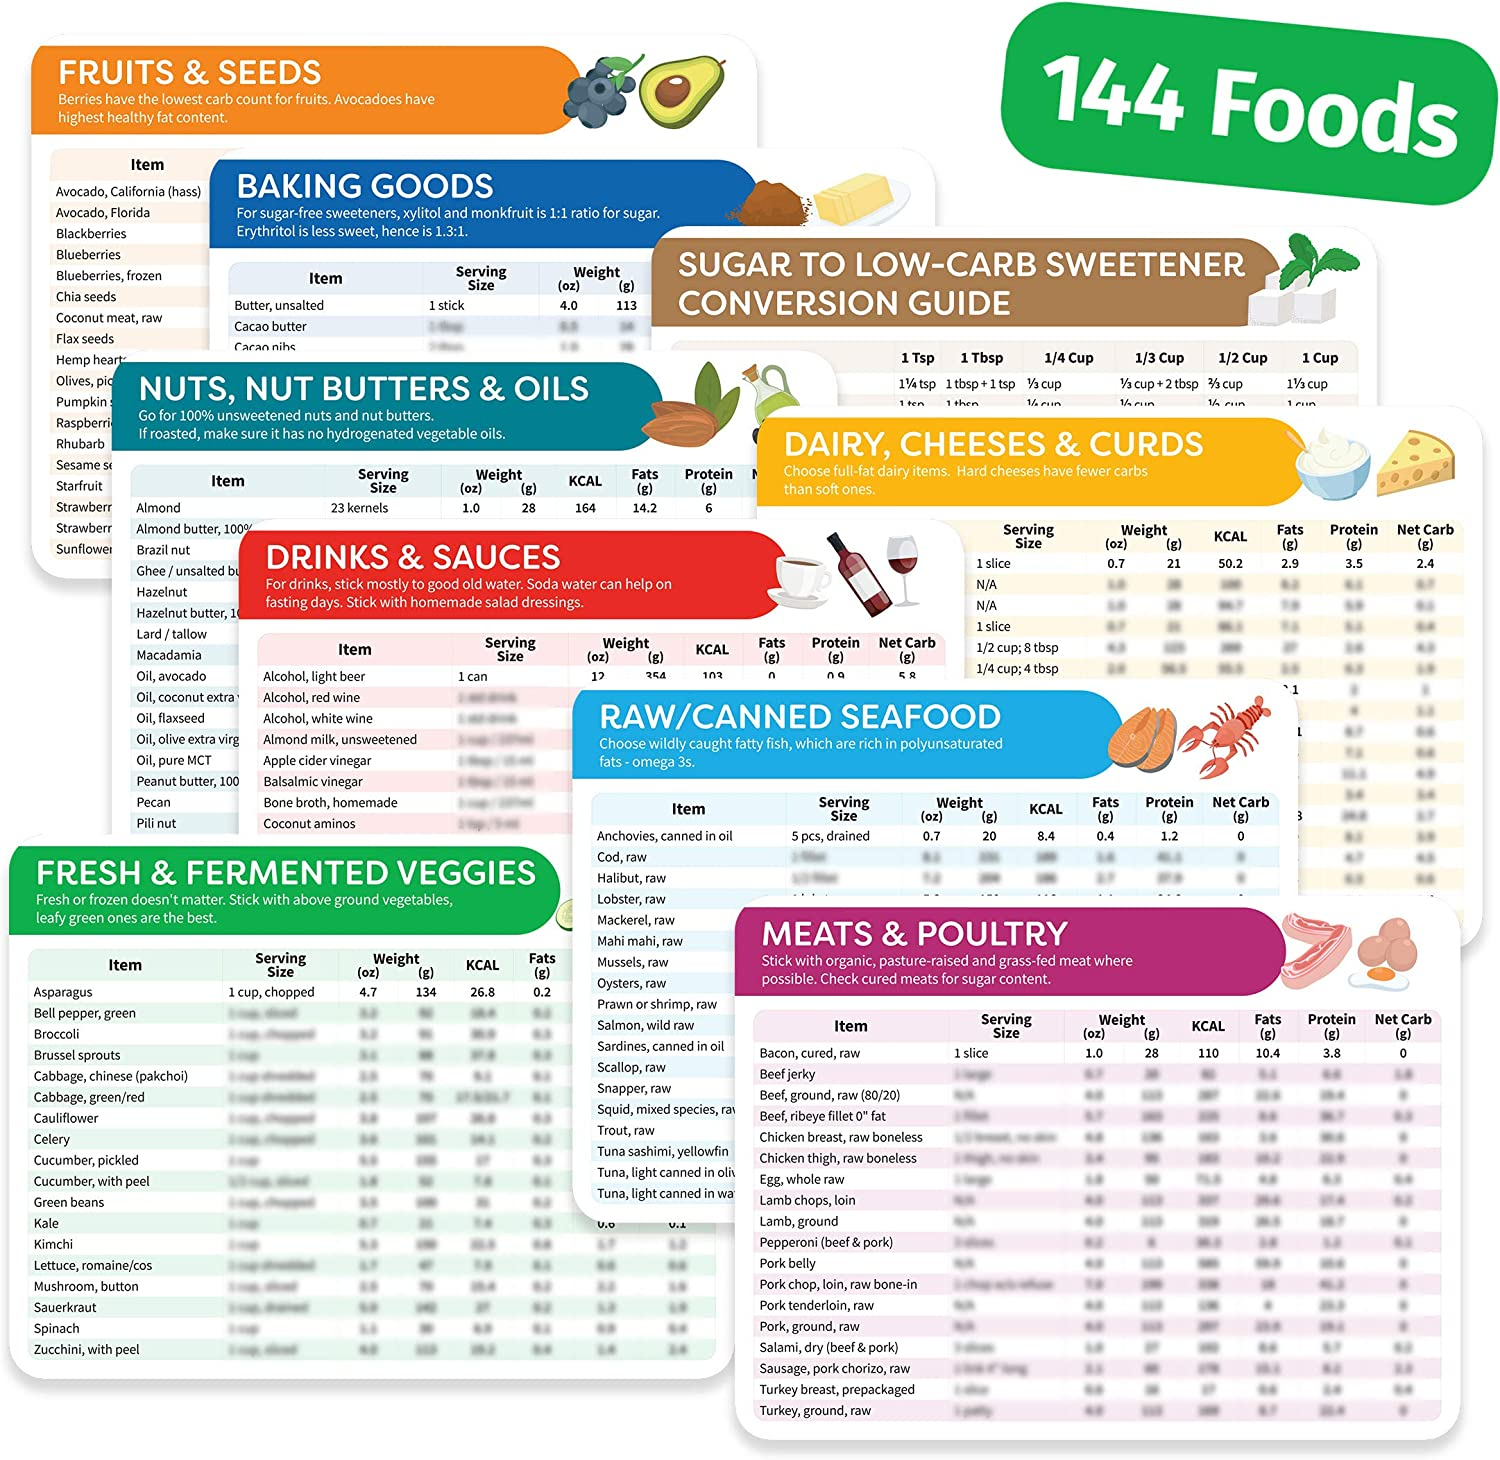 Amazon Com Keto Cheat Sheet Magnets 9 Pc Keto Diet For Beginners Dummies Kit With 144 Foods Magnetic Keto Food List Planning Tool Chart Weight Loss Low Carb Ketogenic